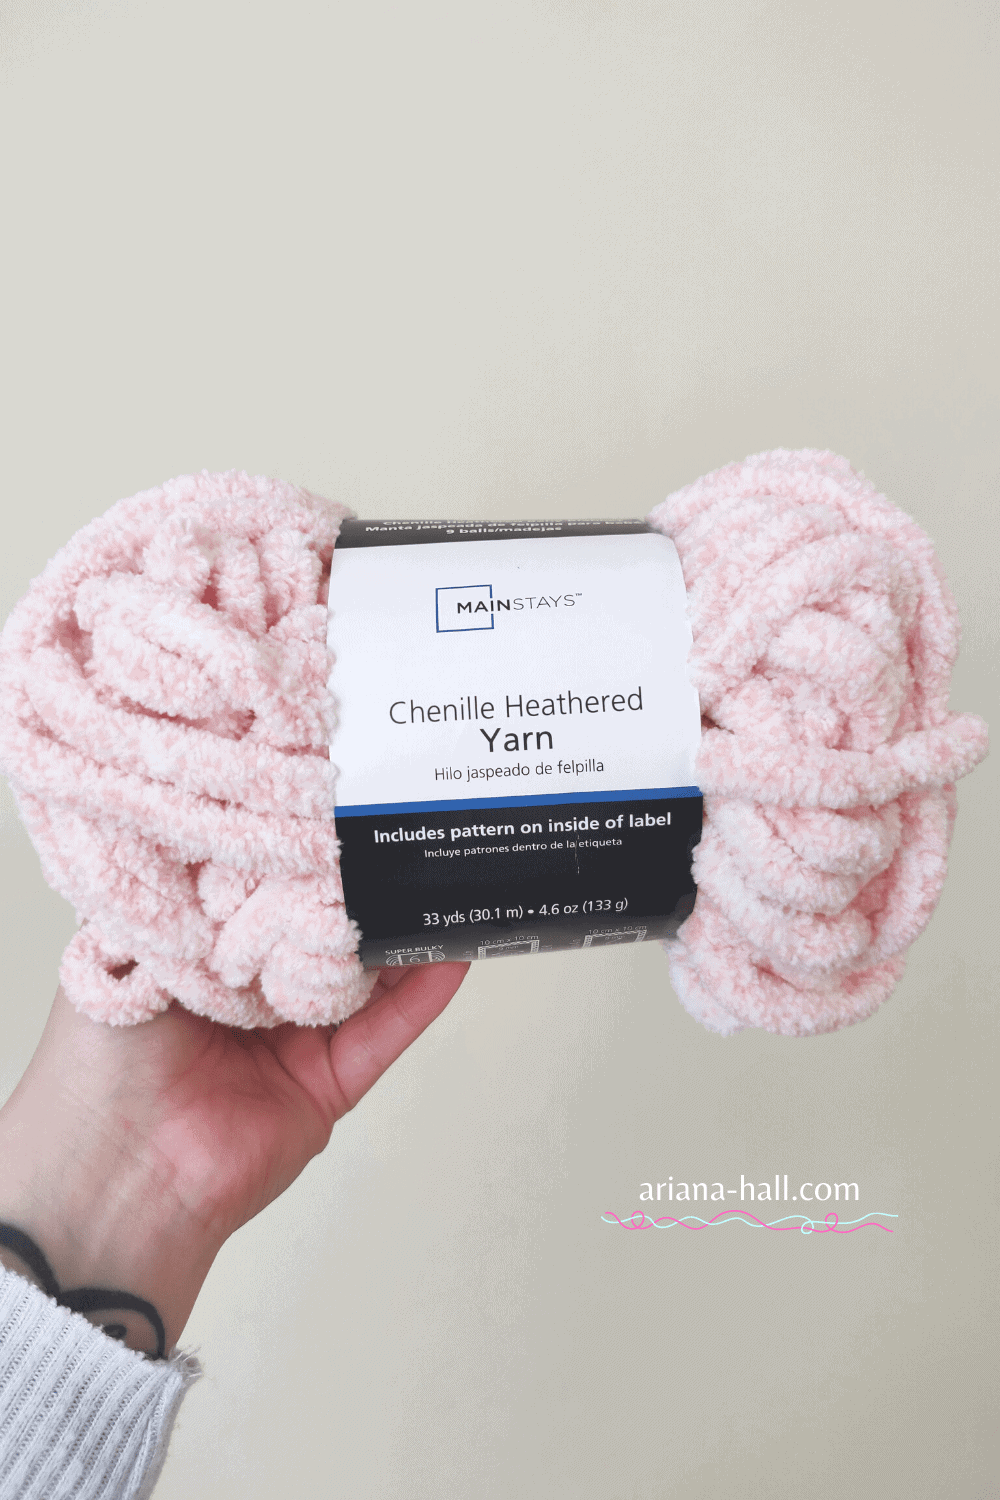 Chenille Heathered Pink Yarn from Walmart